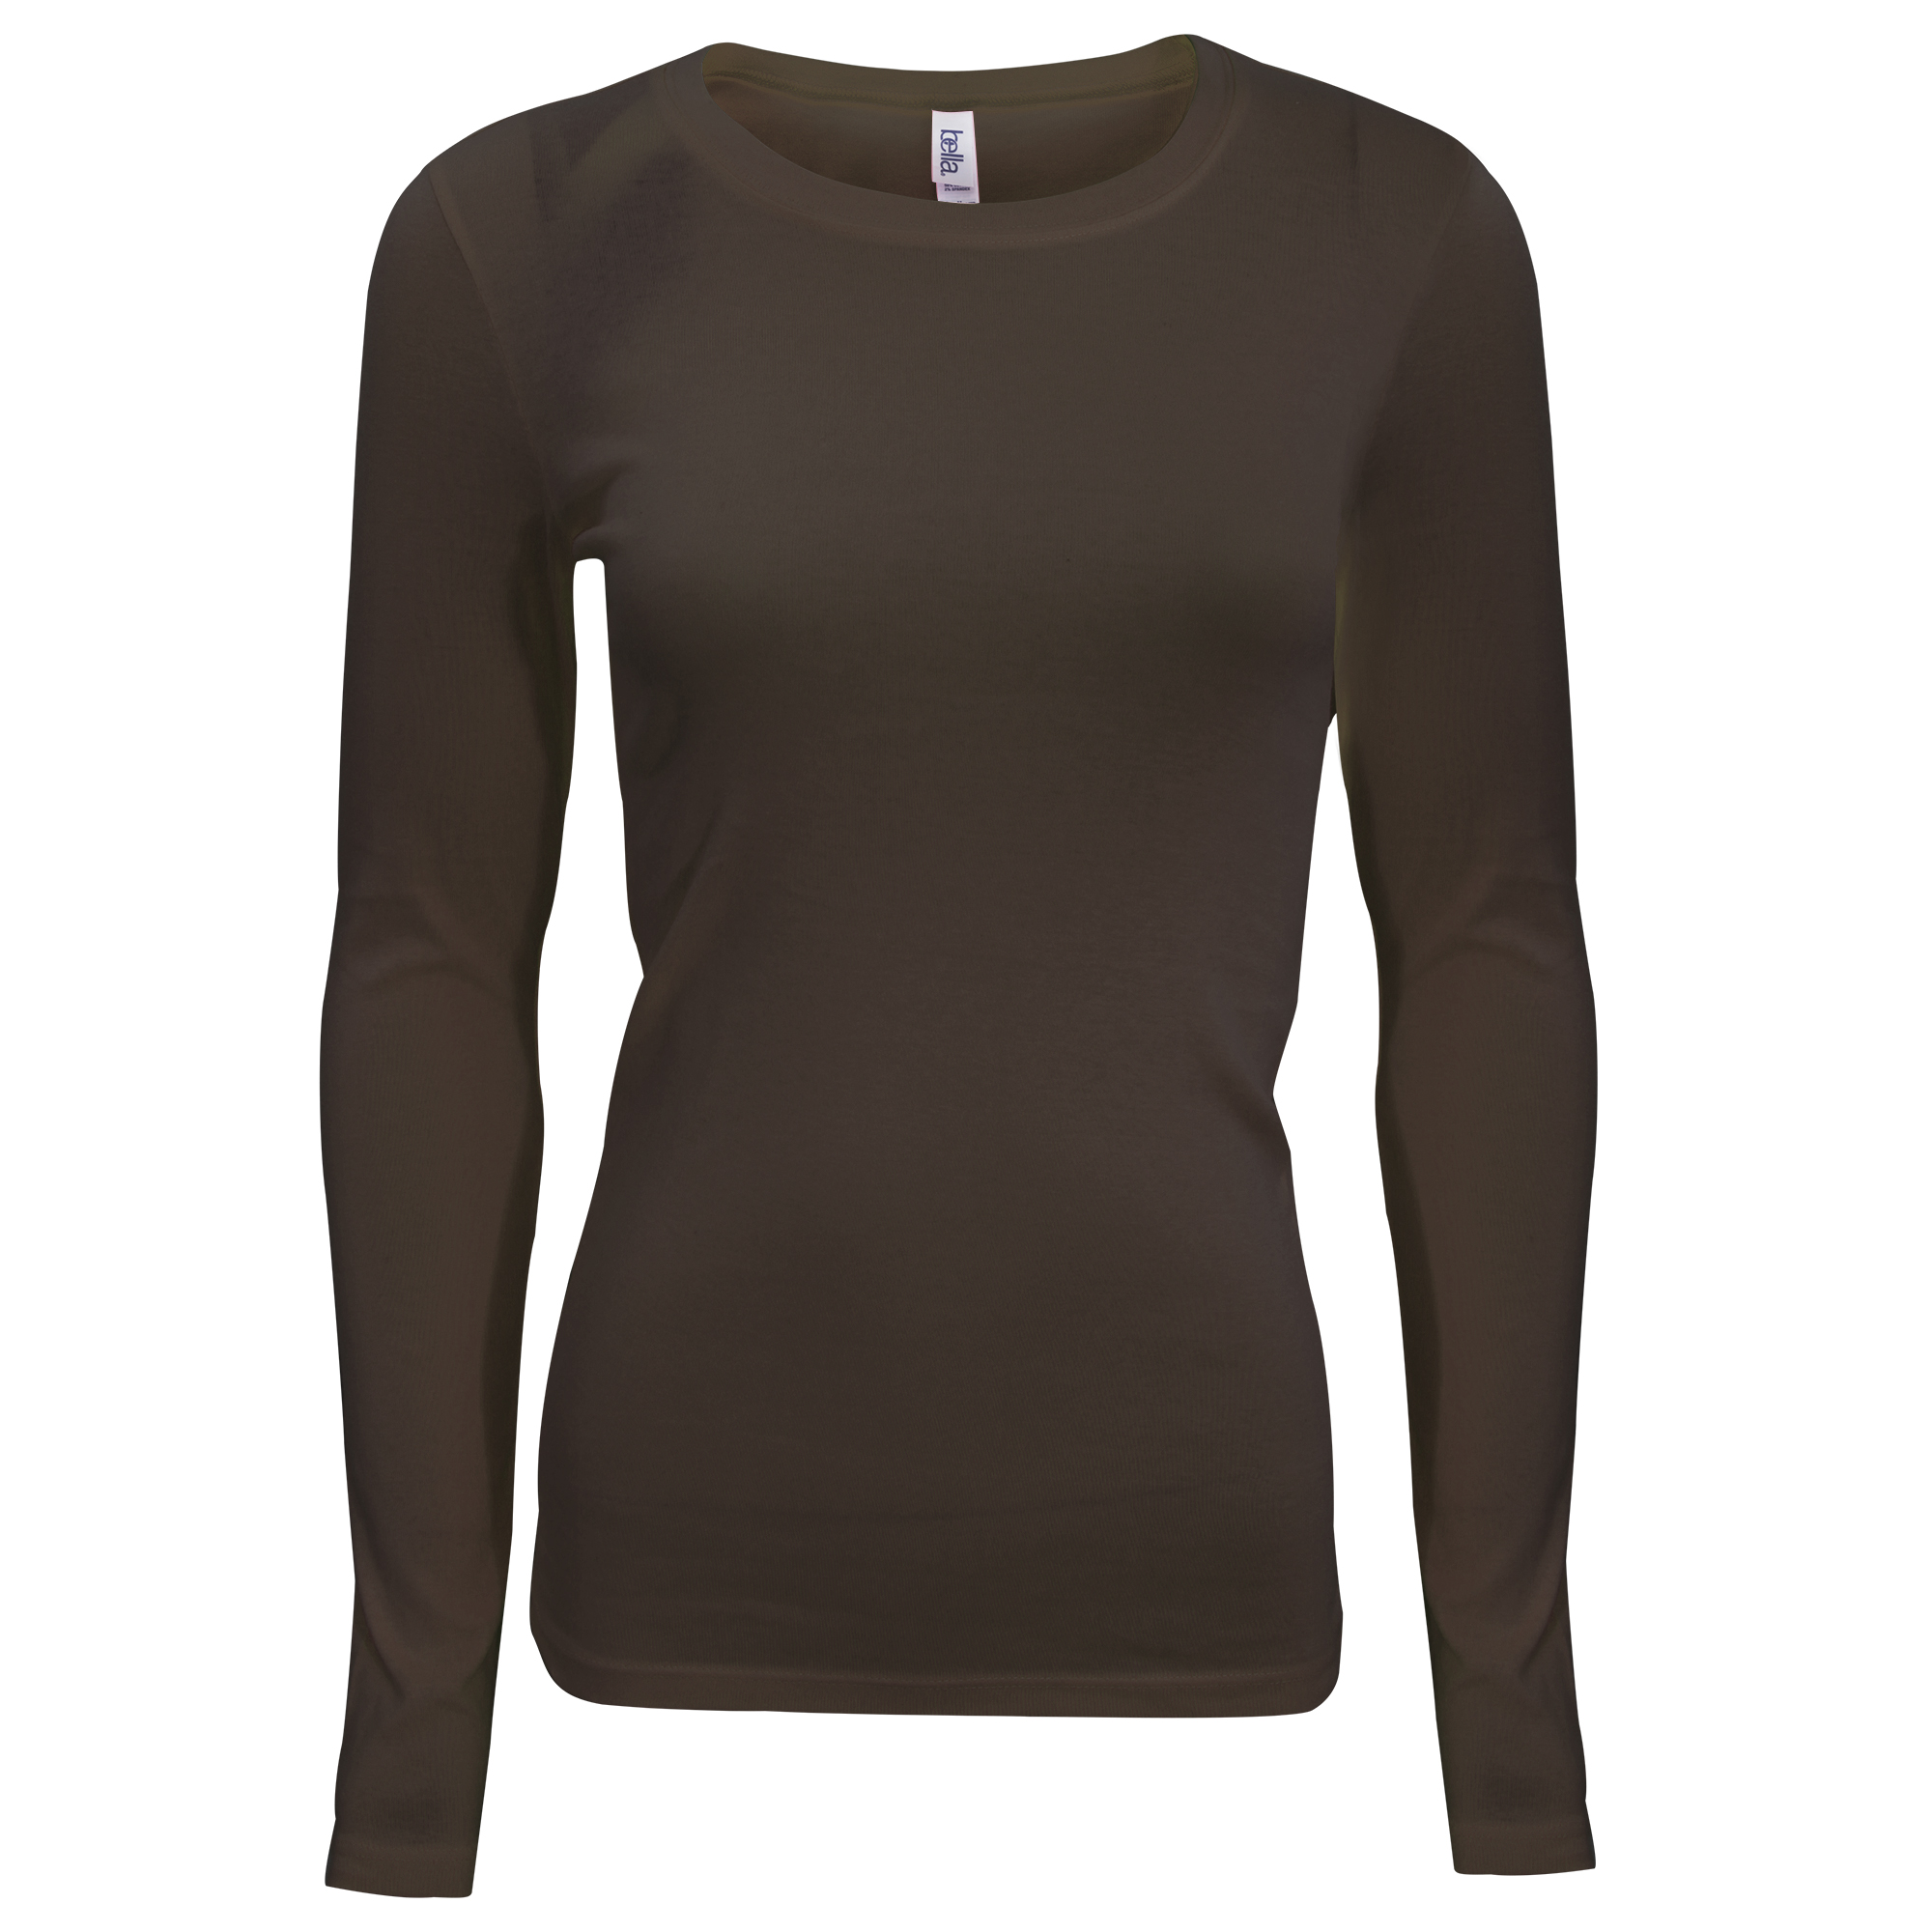 Shop our wholesale Womens t-shirt inventory with tons of styles and colors available.